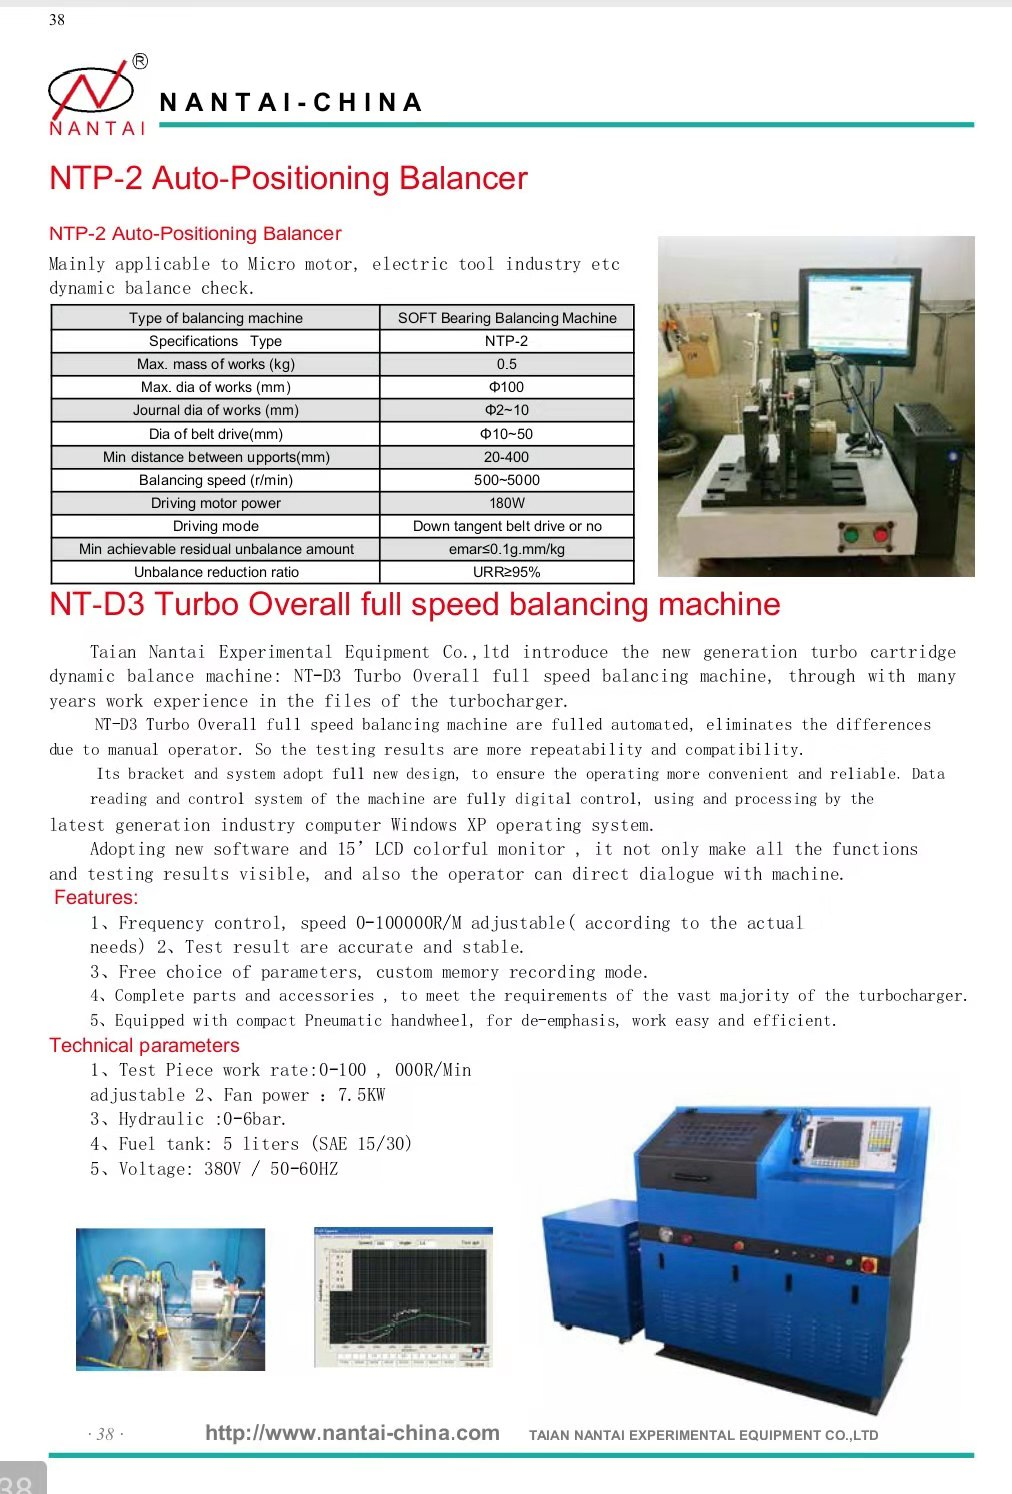 NTP-2 Auto POSITIONING BALANCER